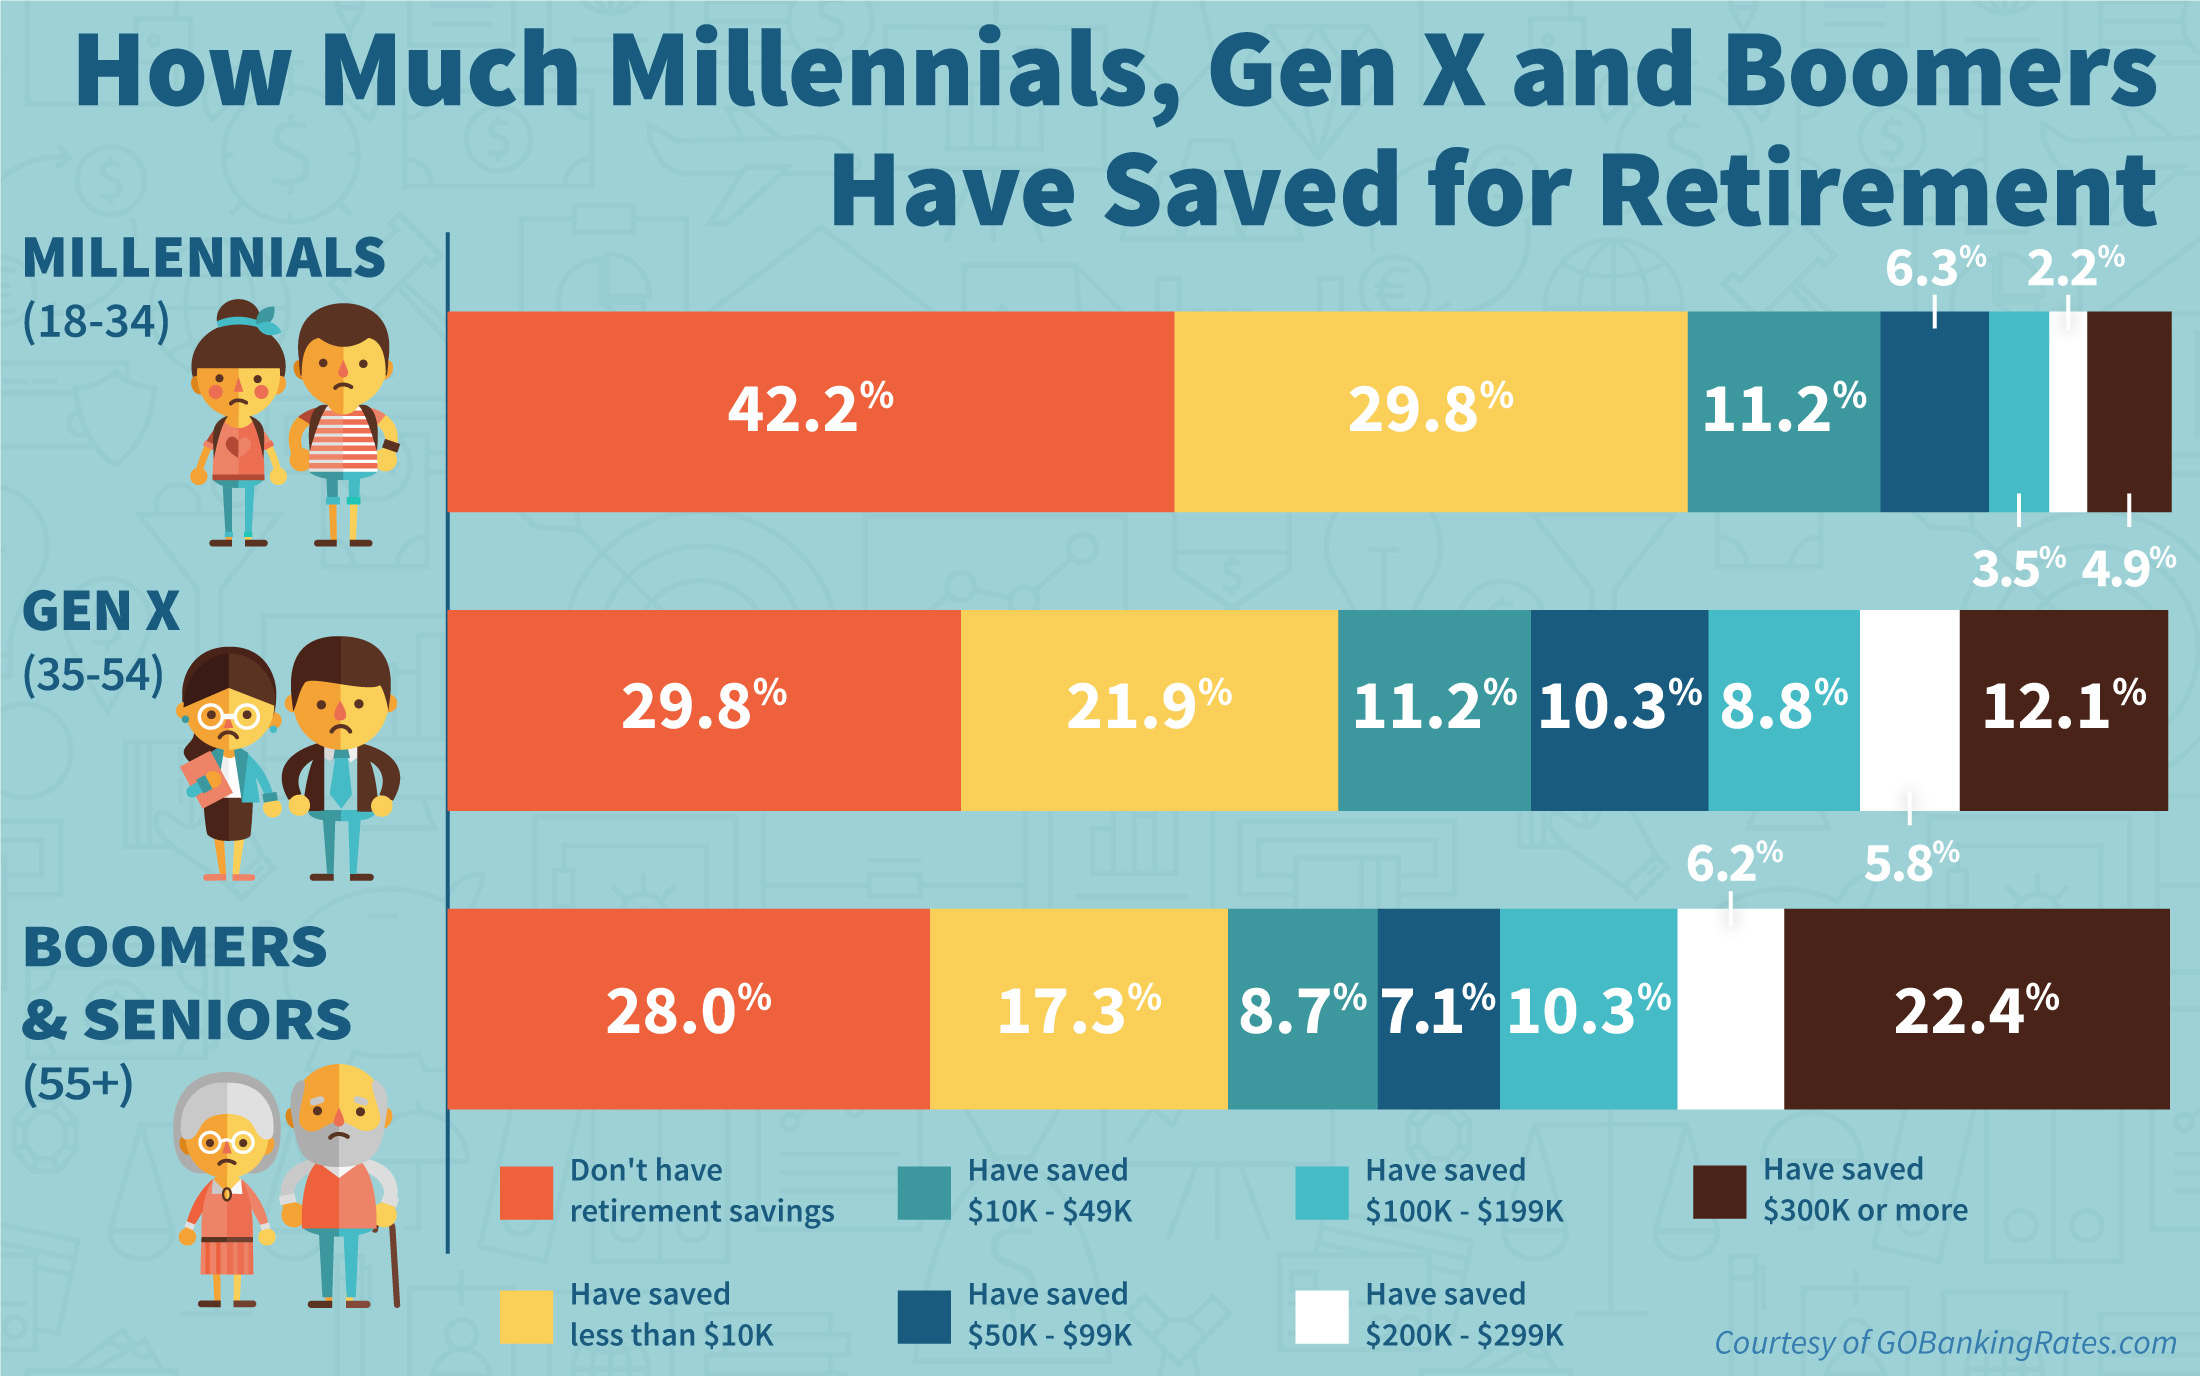 Survey: Comparison of How Much Millennials, Gen Xers, Boomer and Seniors Have Saved for Retirement